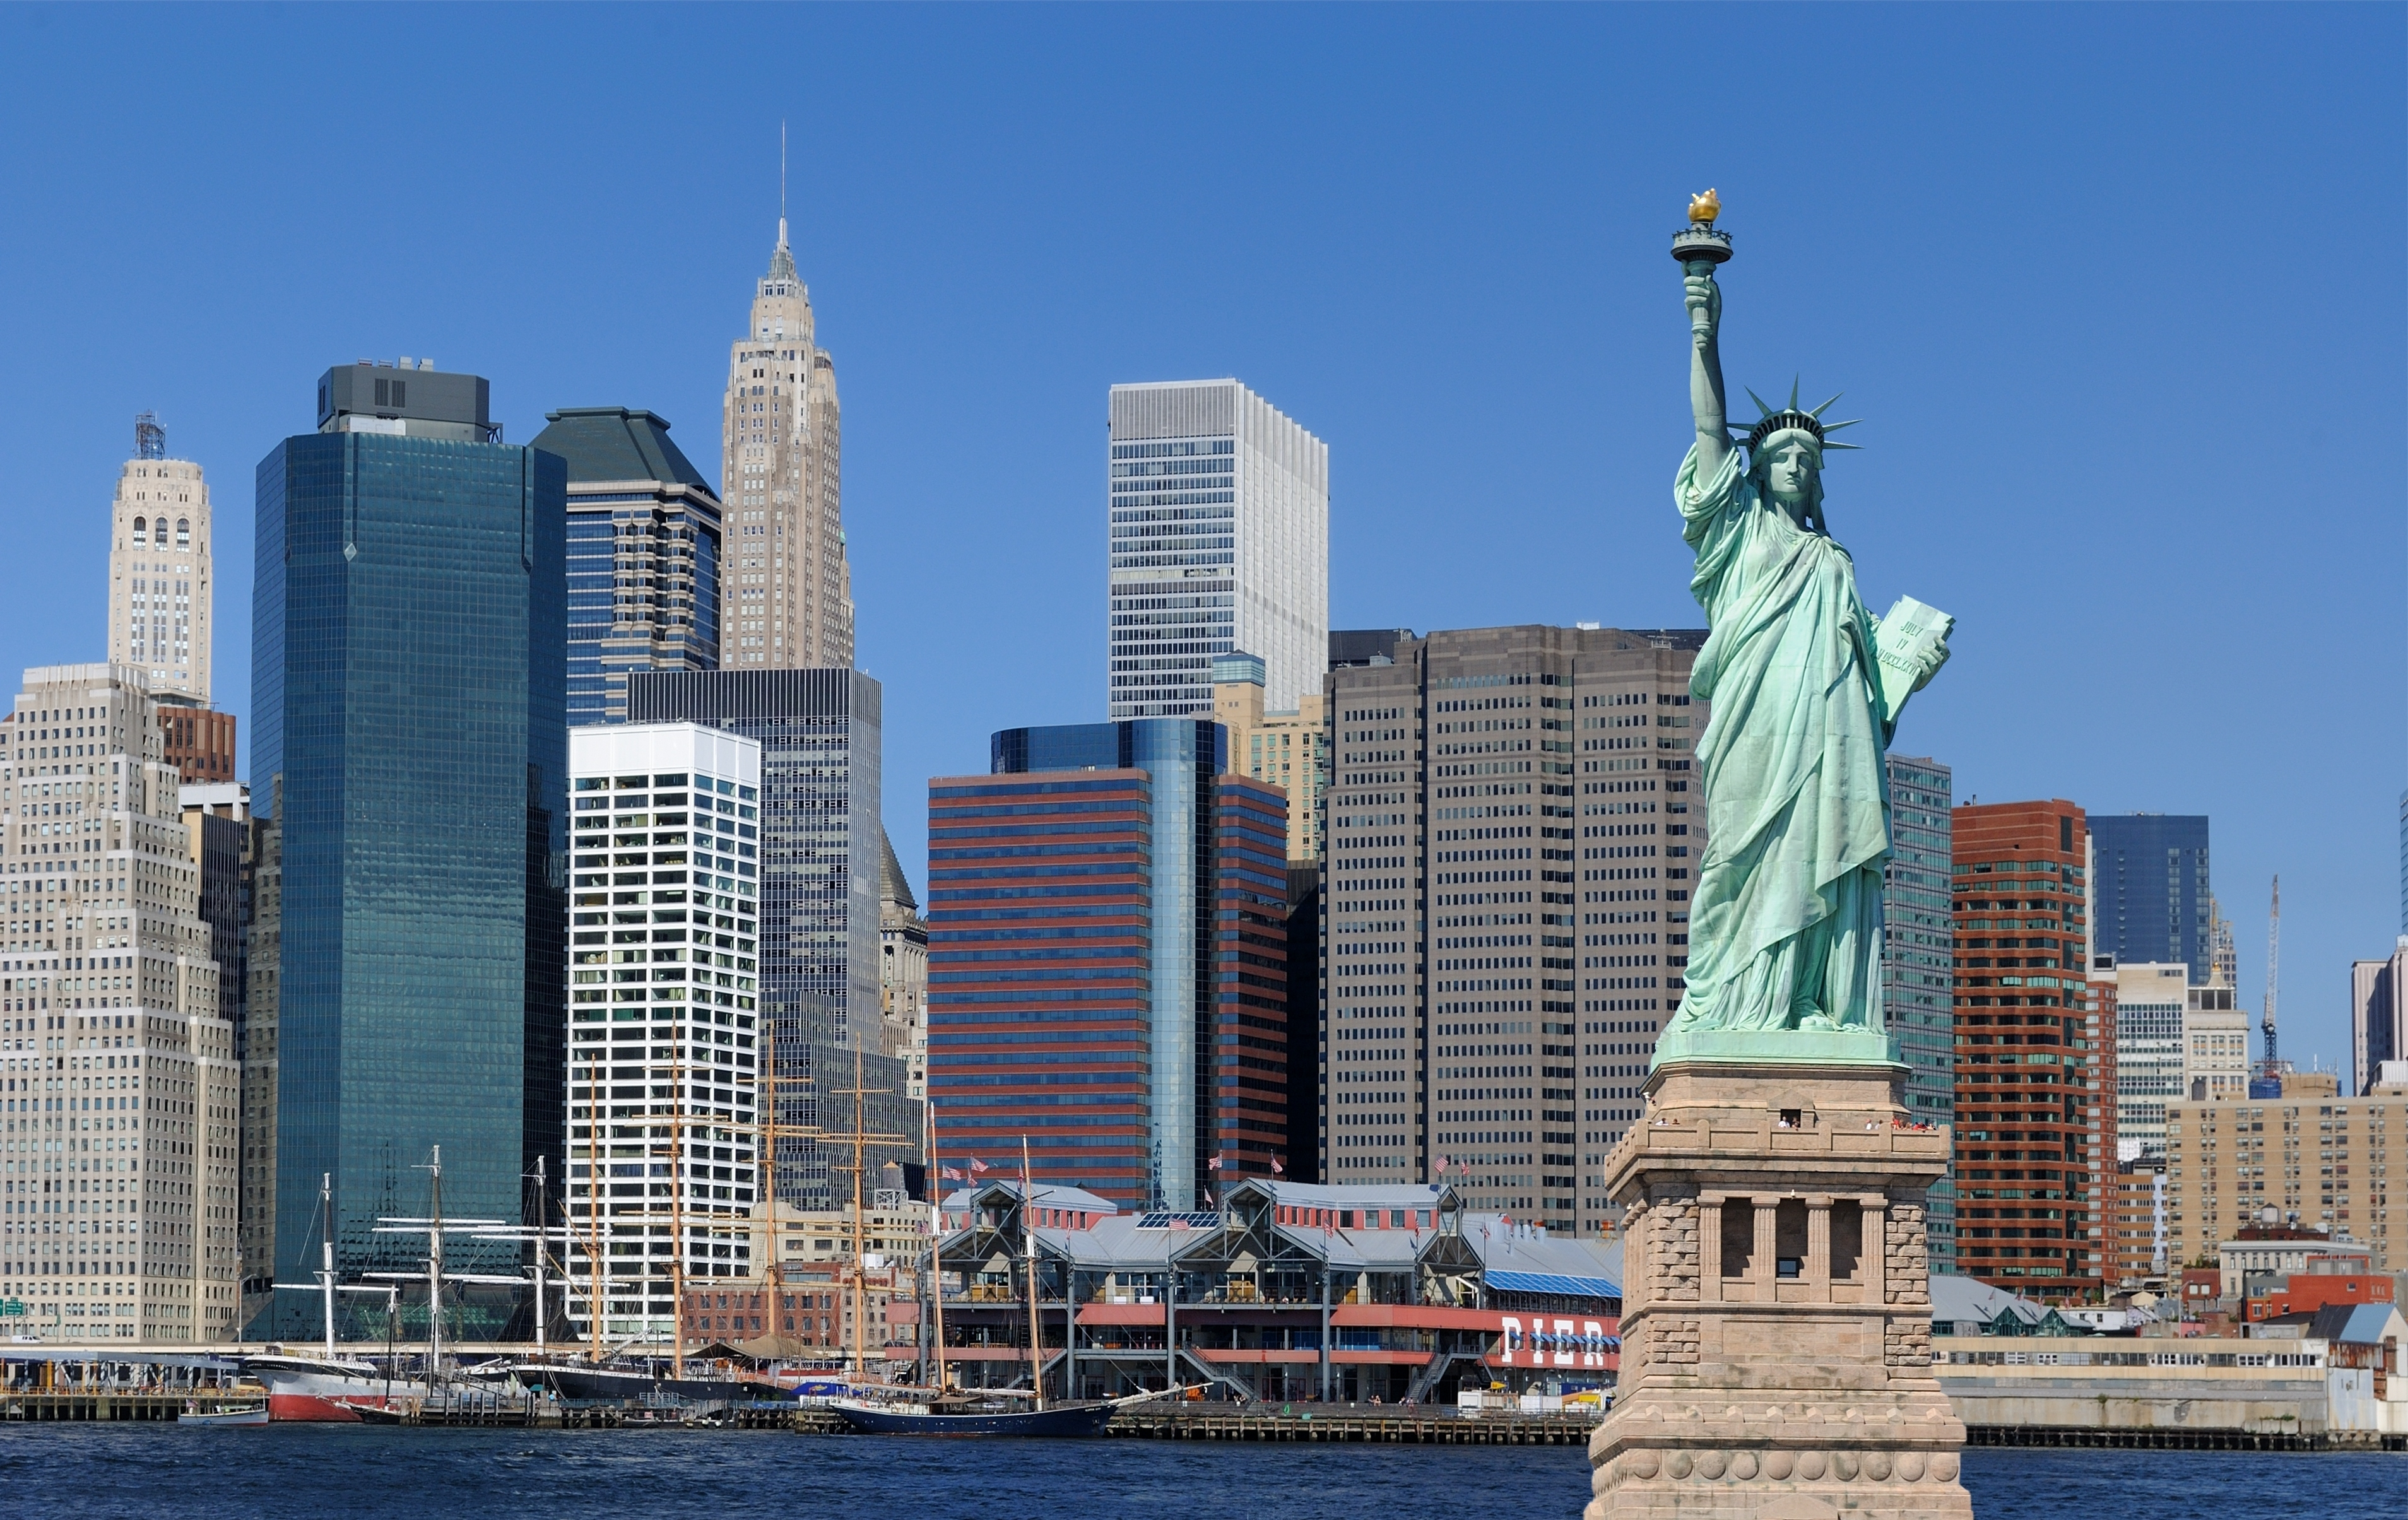 statue-of-liberty-hd-wallpapers-in-new-york | wallpaper.wiki